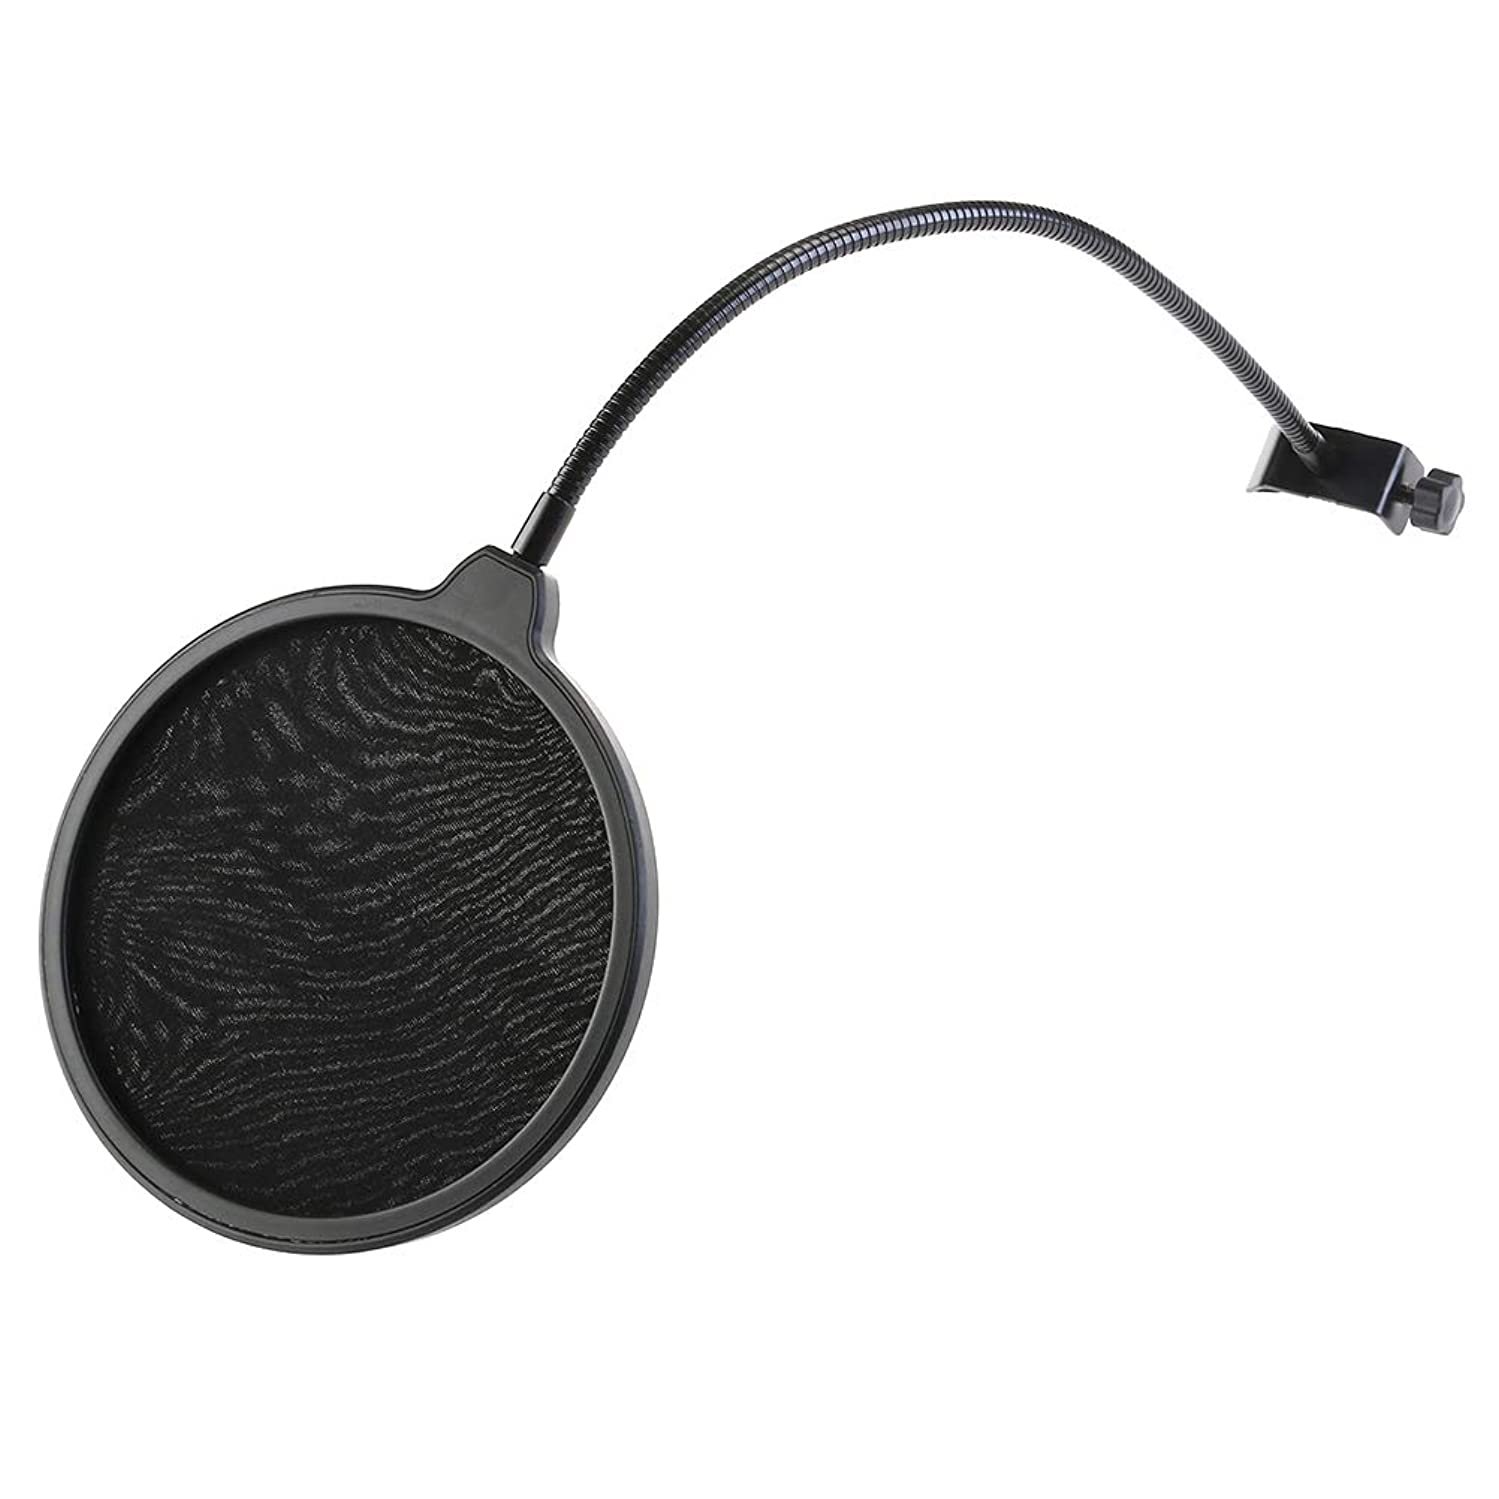 2PCS Double-Layer Microphone Wind Screen Filter Mask Shield with Flexible Holder (Black)